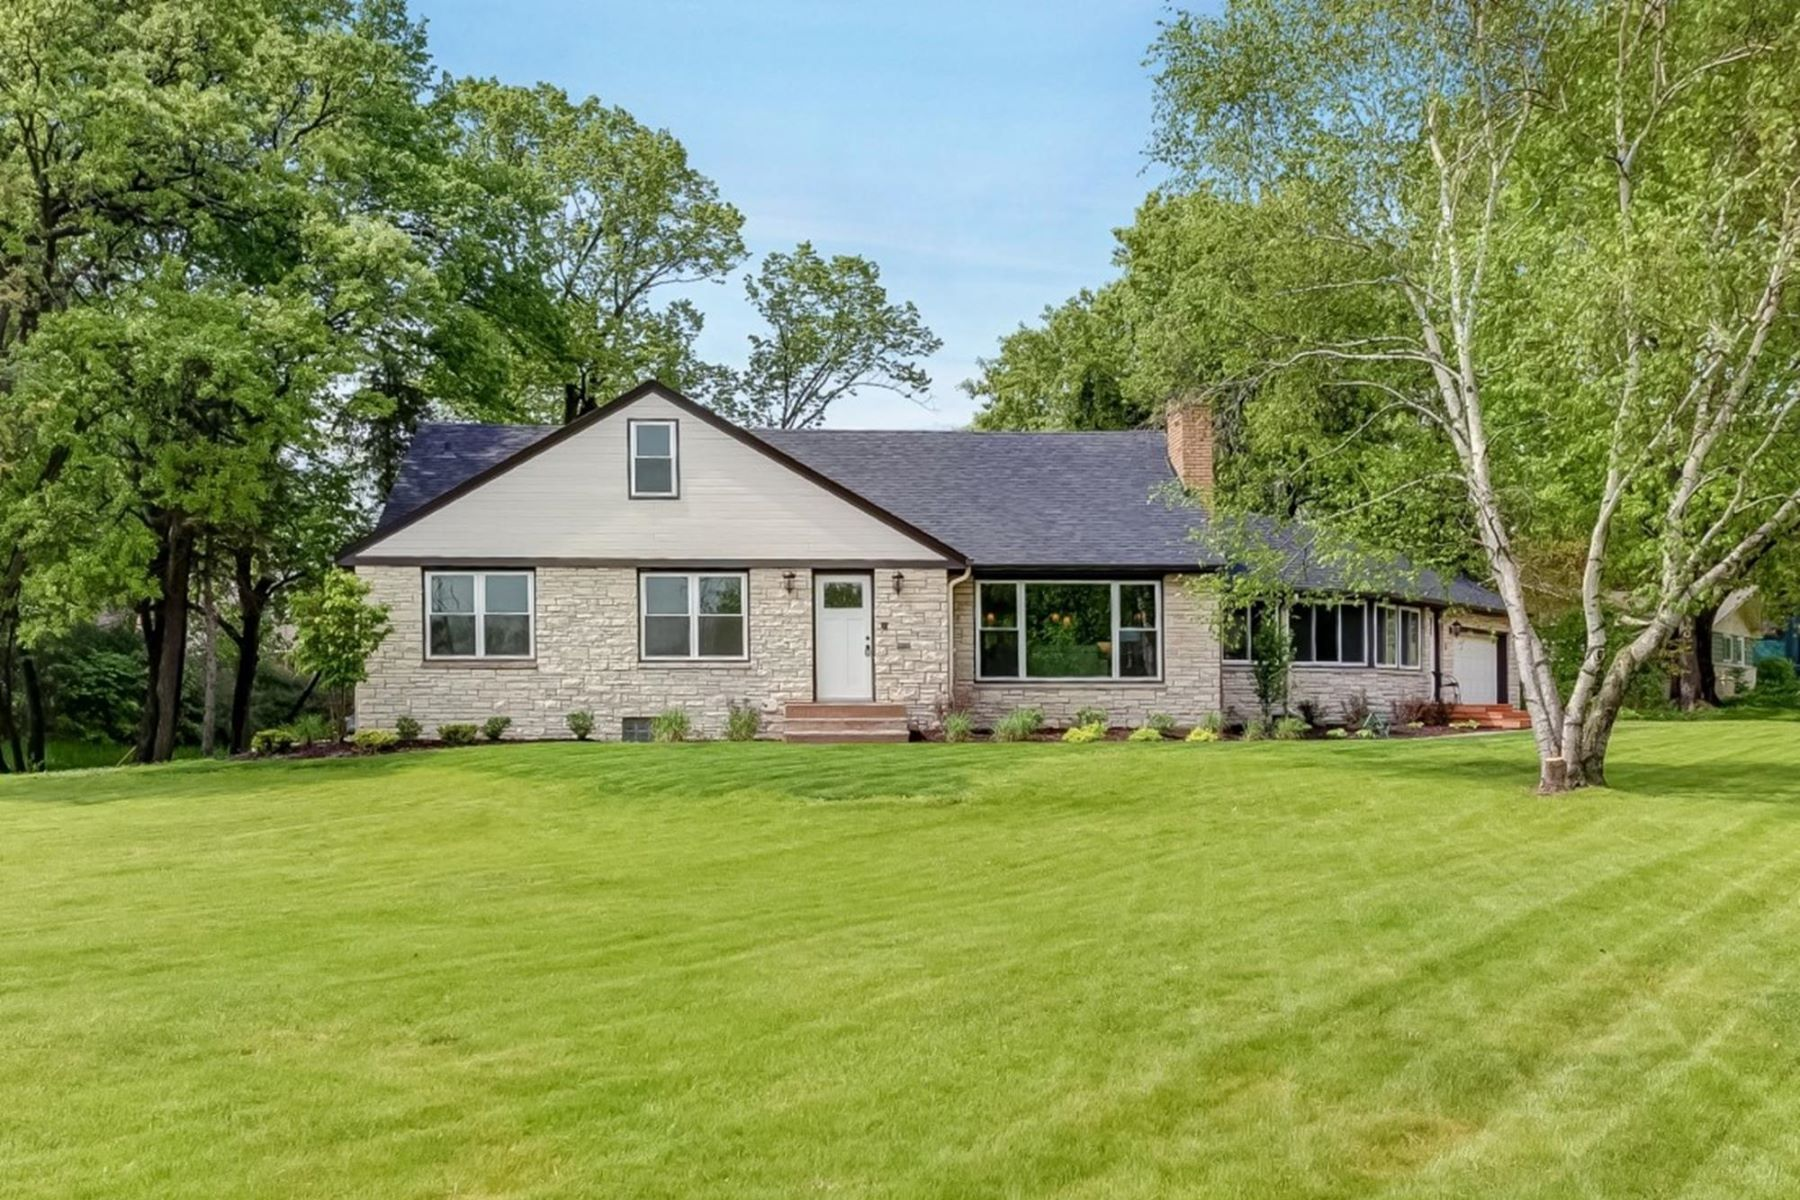 Single Family Home for Sale at 2081 Indiana Avenue N Golden Valley, Minnesota, 55422 United States